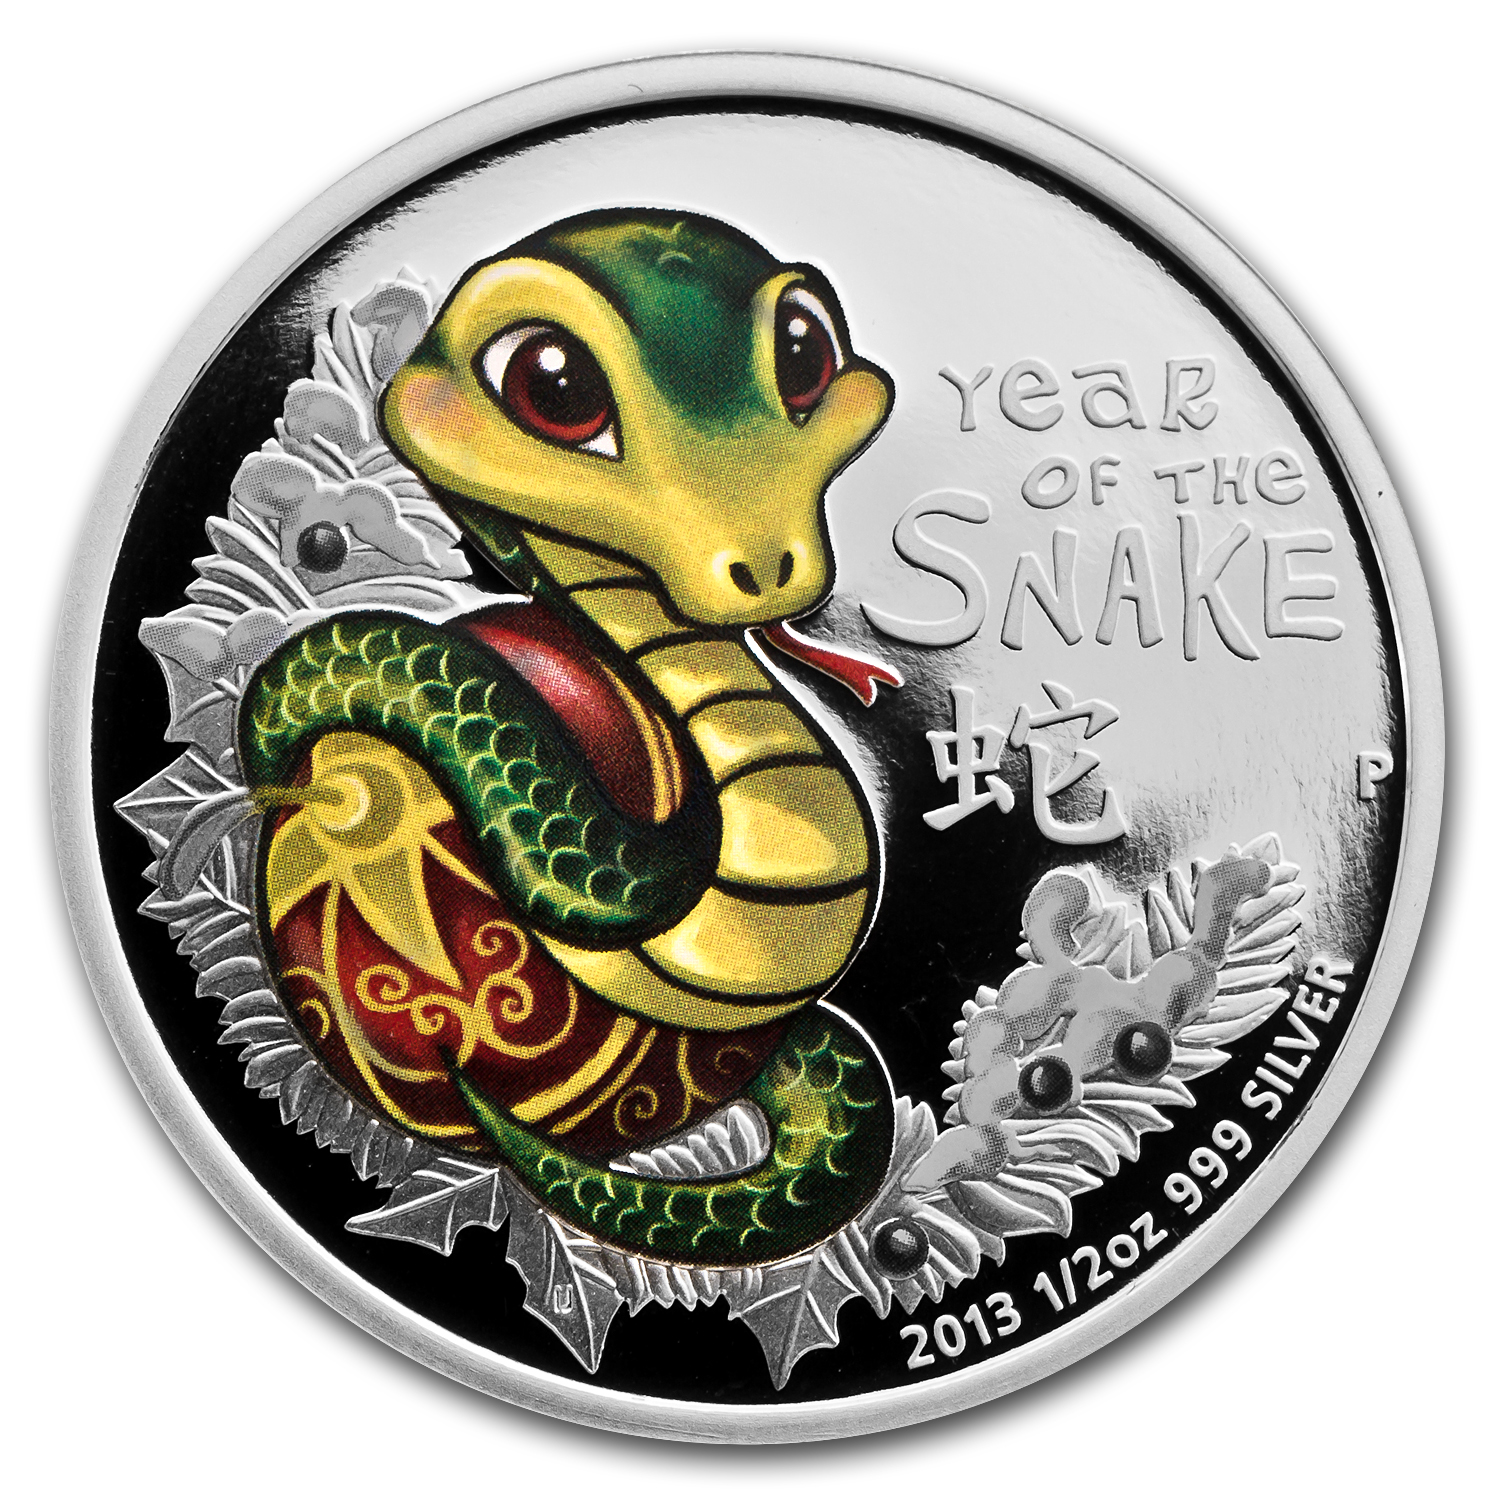 2013 Tuvalu 1/2 oz Silver Baby Snake Proof (Colorized)